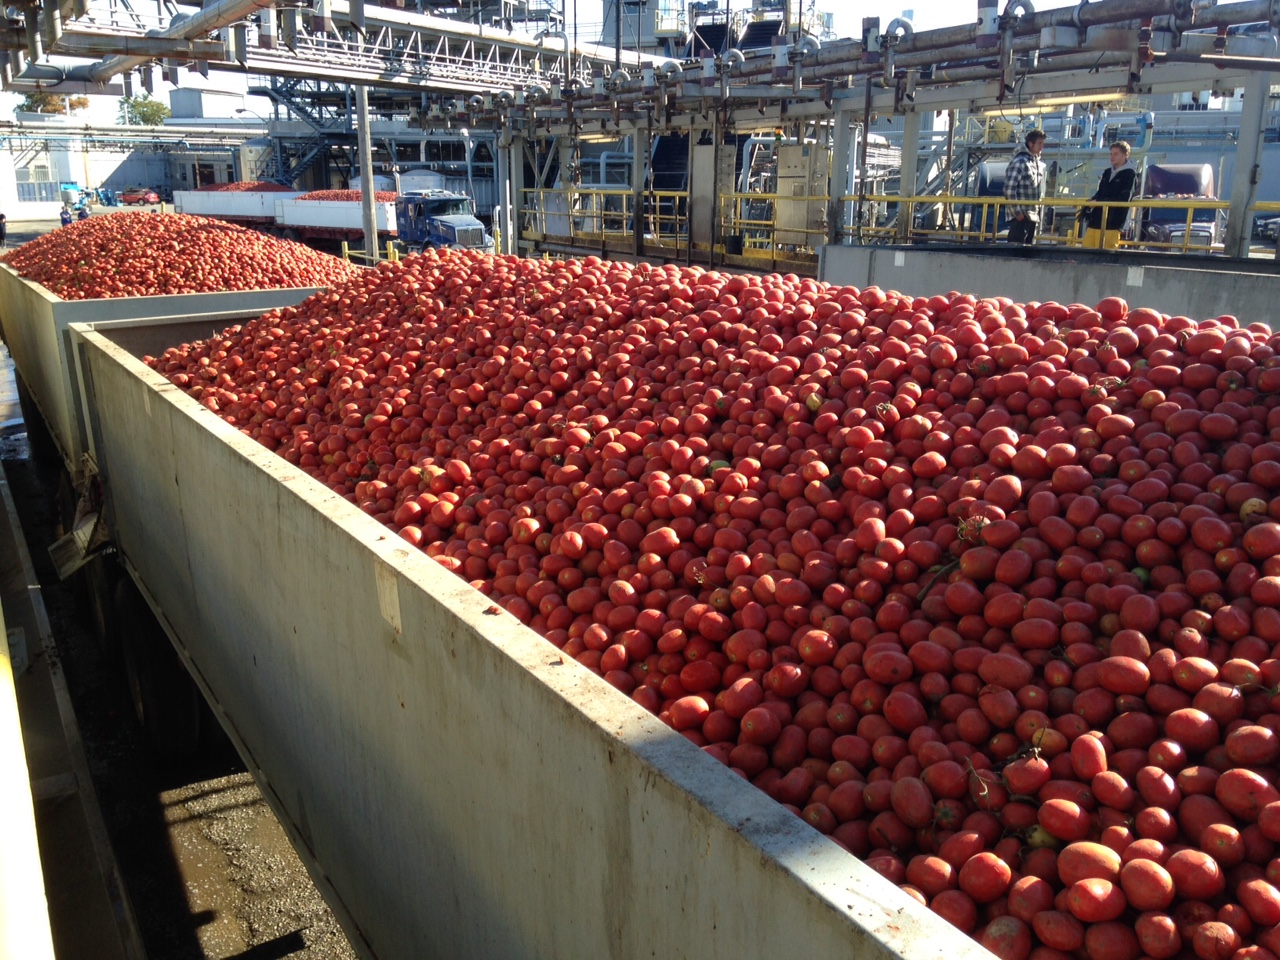 Tomatoes at Highbury Canco ready to be processed. (BlackburnNews photo)